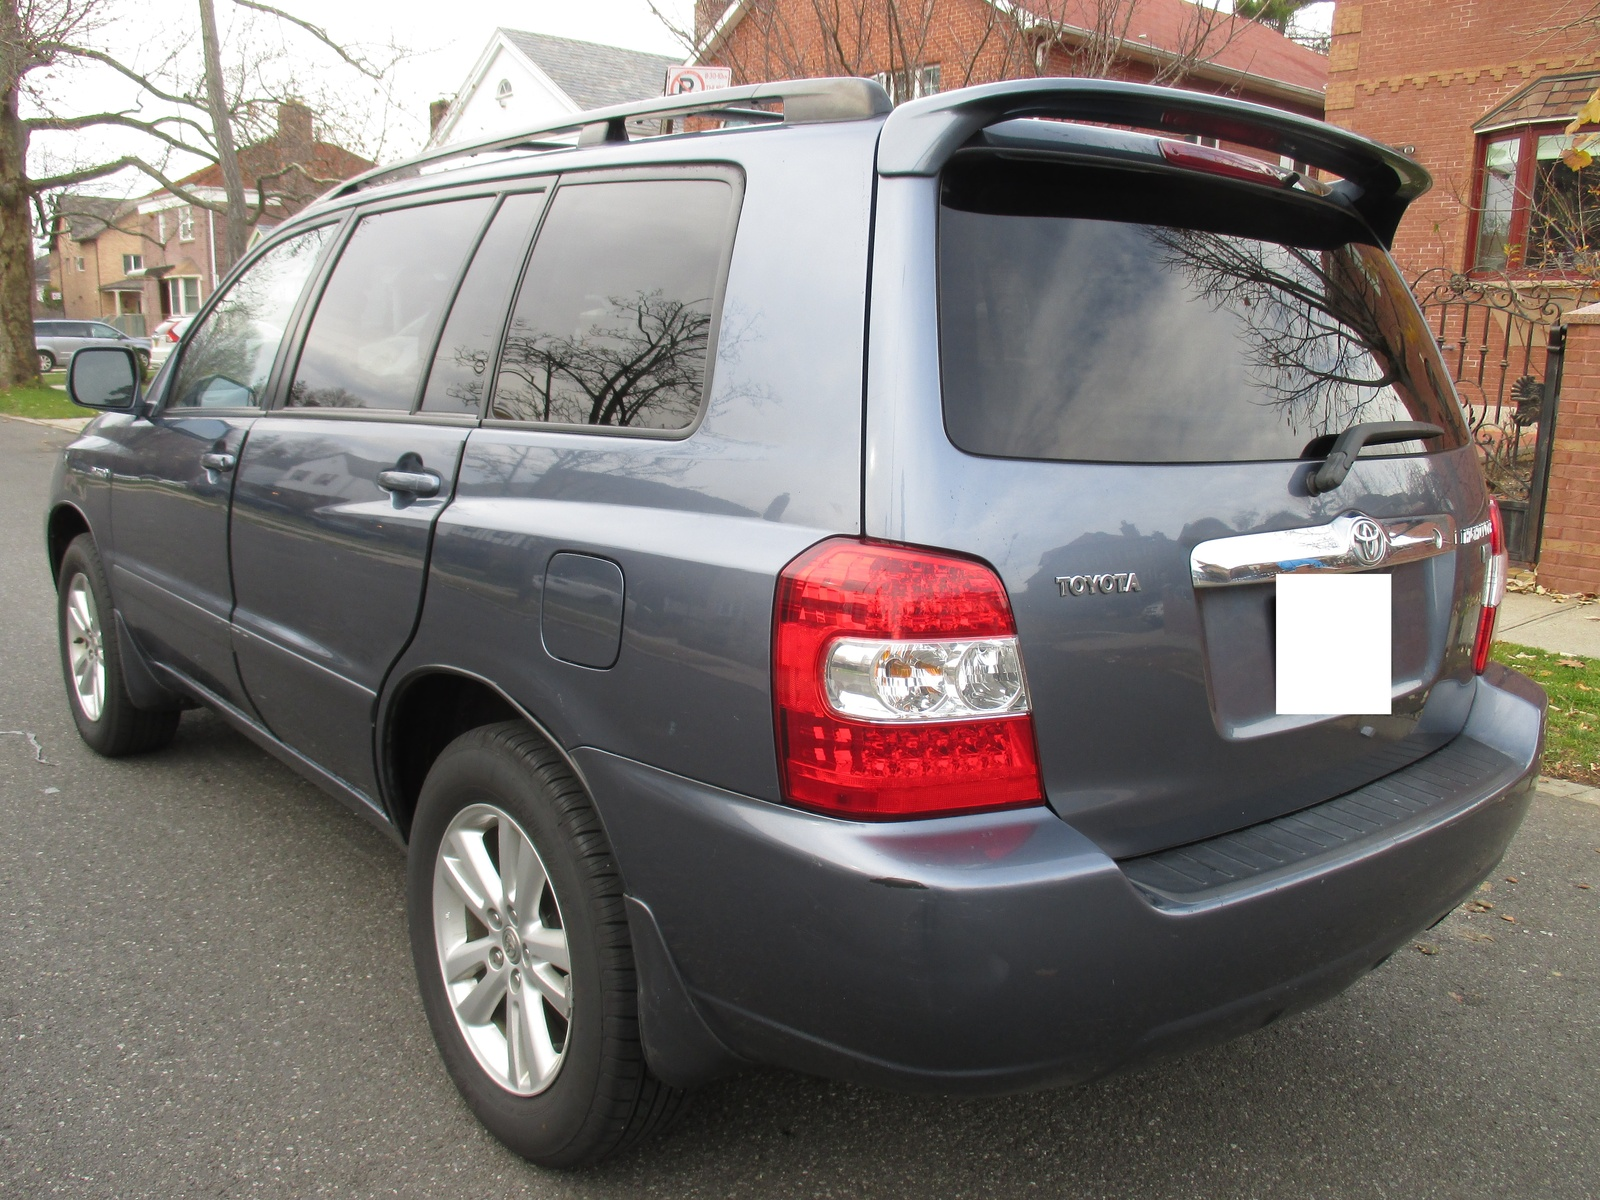 Ford Lincoln Of Franklin >> 2006 Toyota Highlander Hybrid - Overview - CarGurus